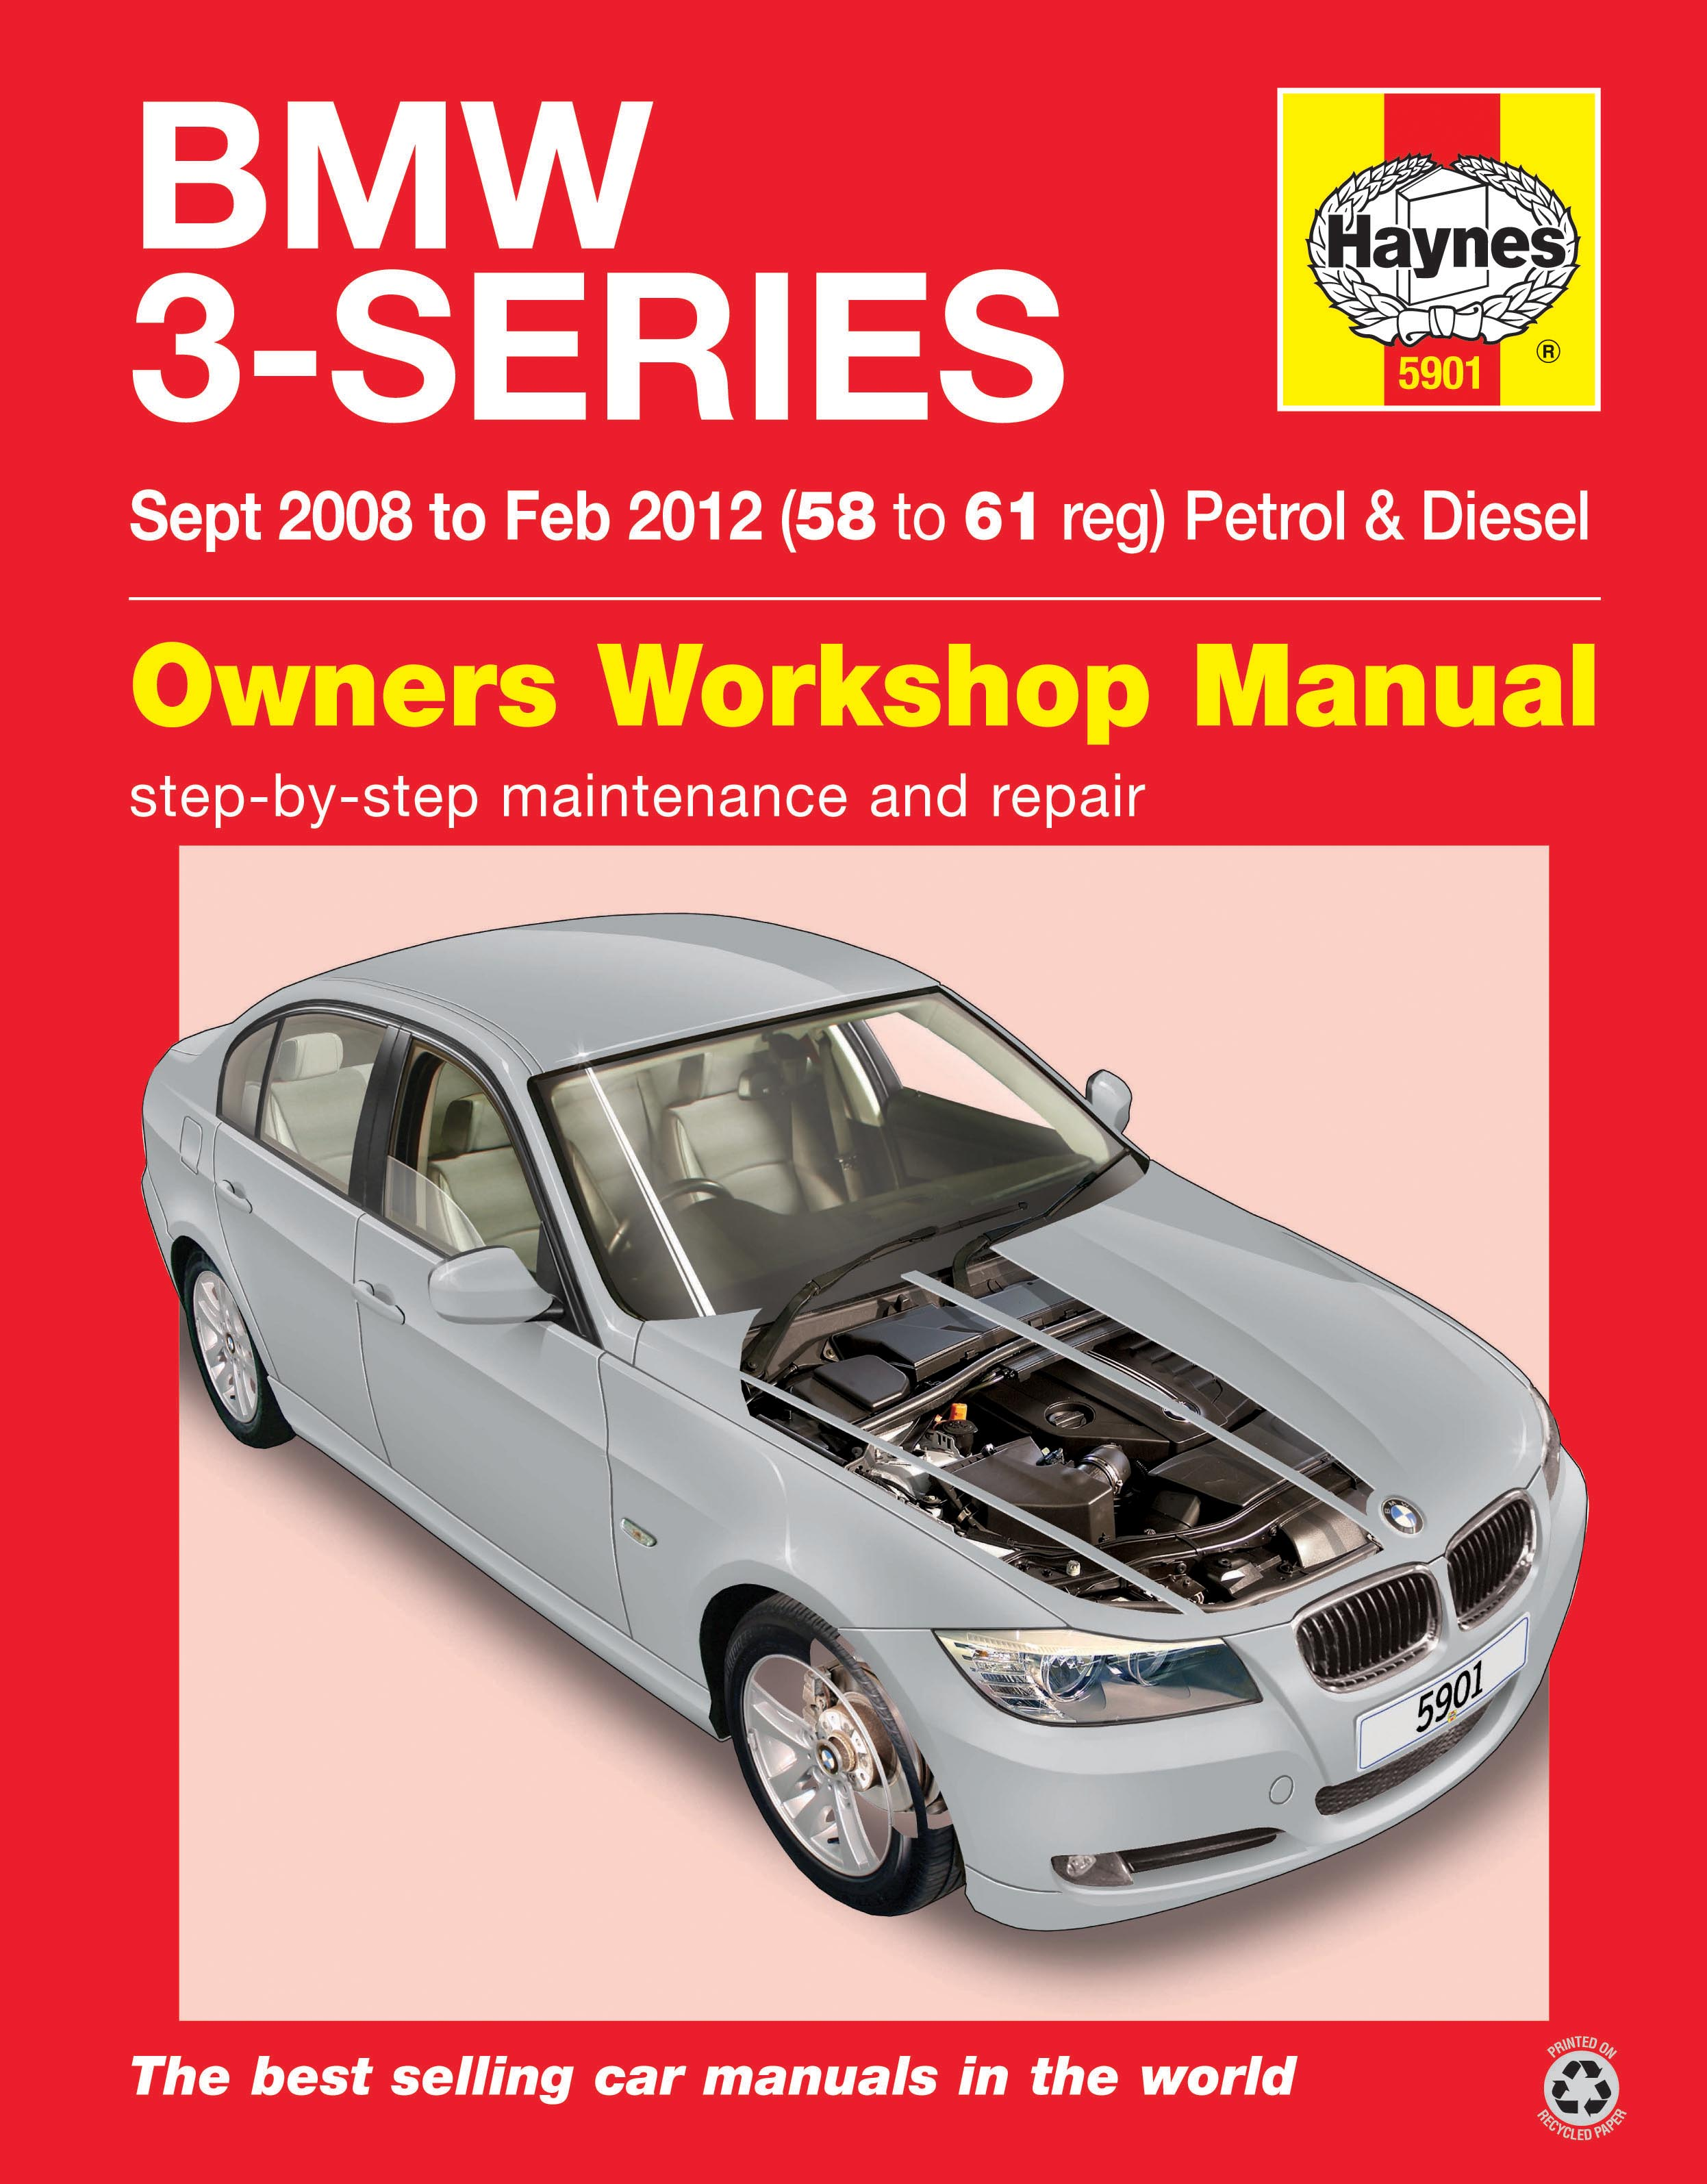 haynes 5901 owners workshop bmw 3 series 08 12  58 61 2007 bmw 335i service manual 2011 bmw 335i service manual